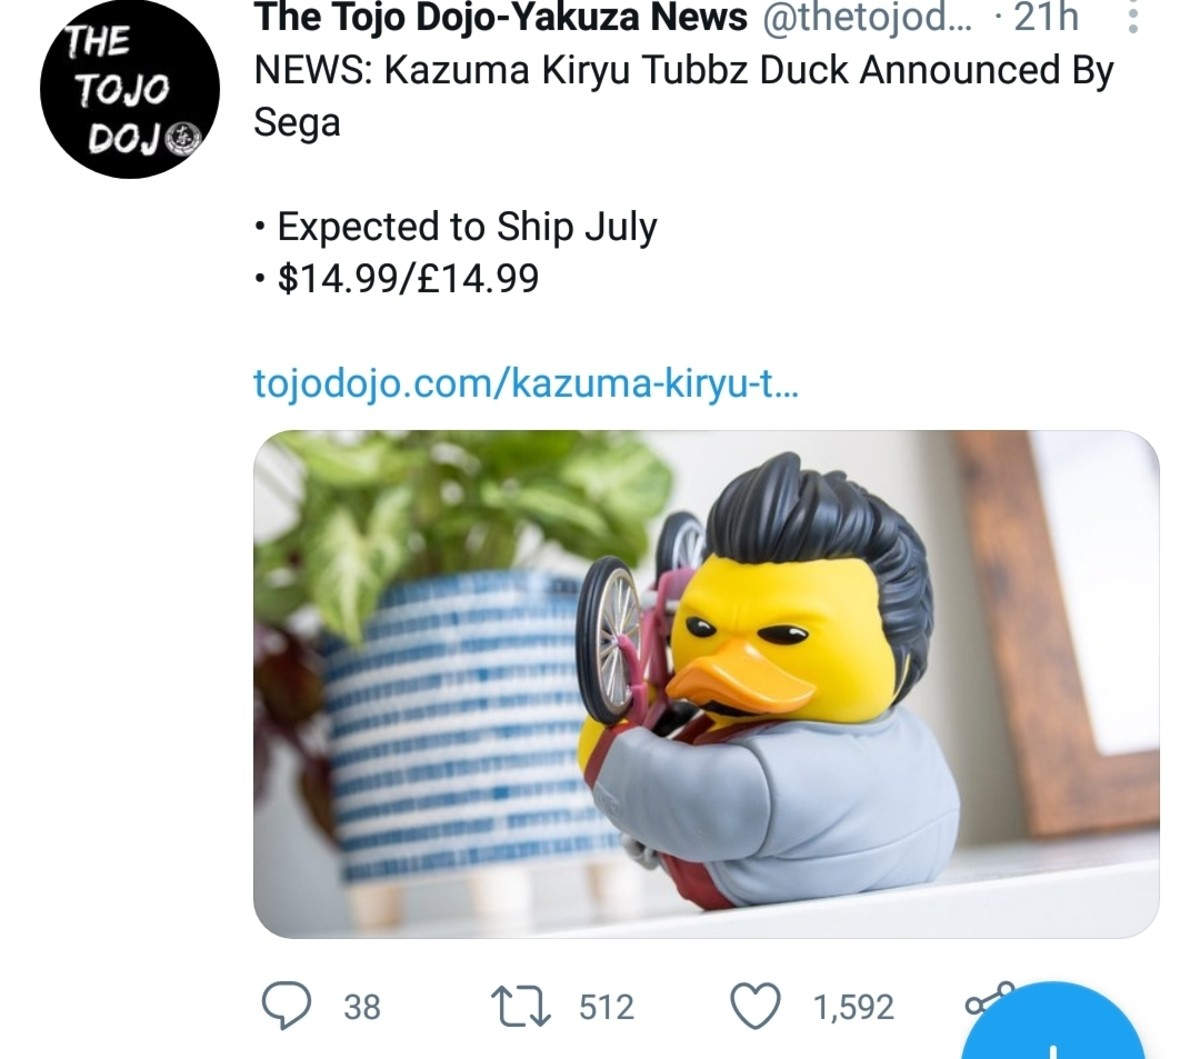 Duck kiriyu. .. Still baffles me they don't even function as proper rubber ducks and float. They apparently sink like rocks.